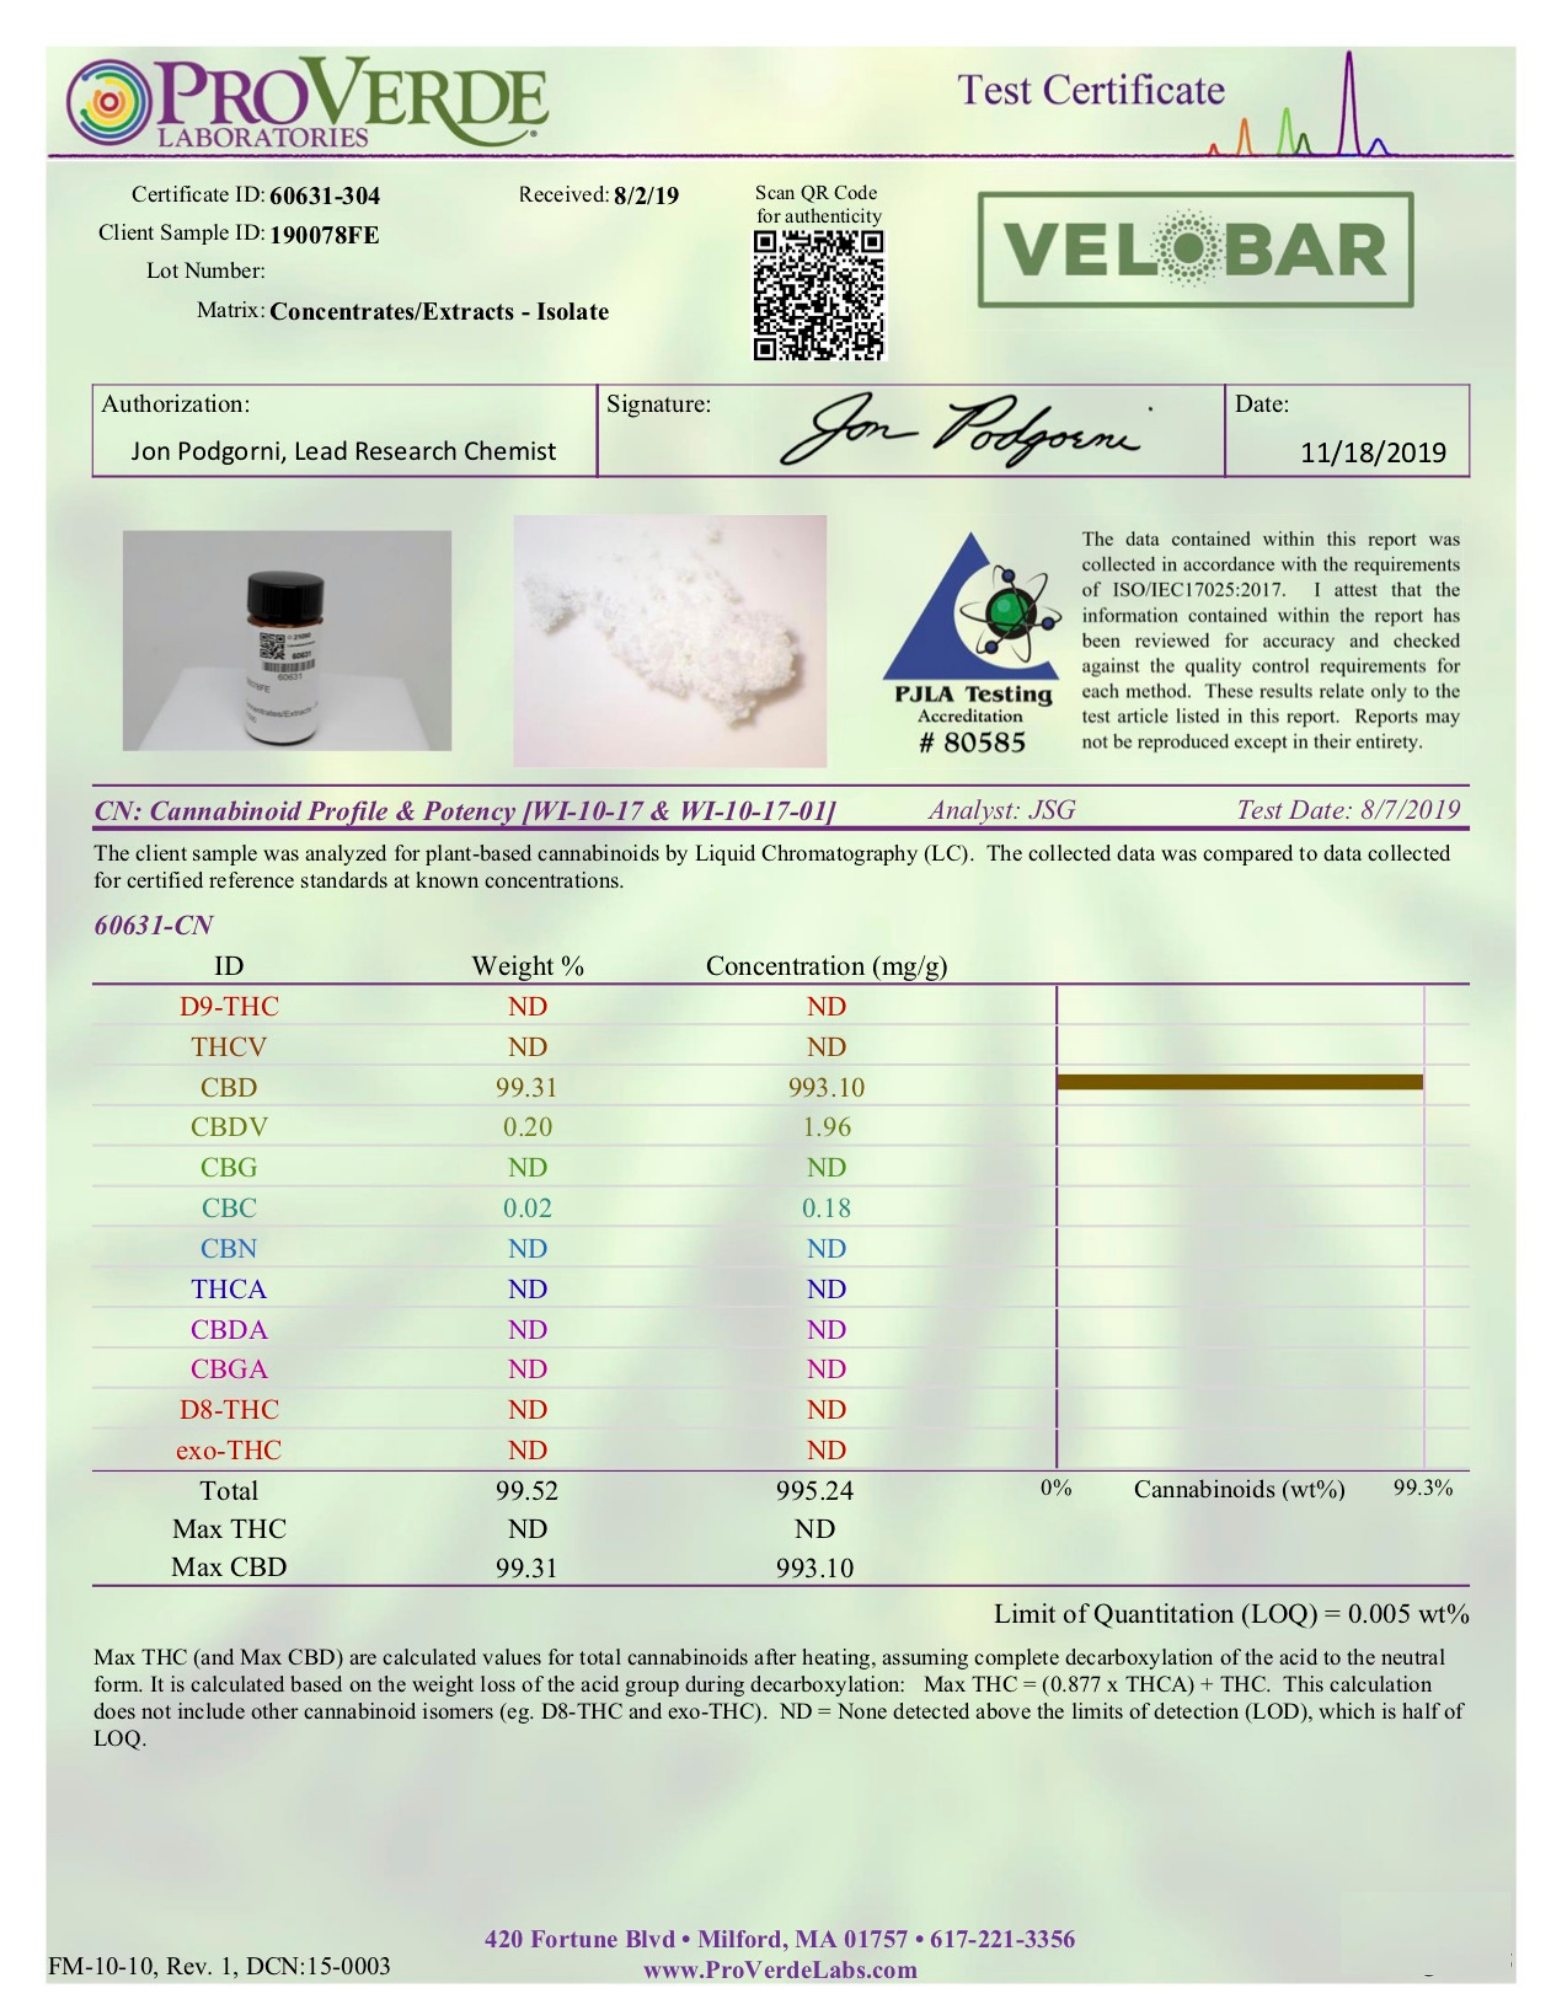 velobar-cbd-material-test-results-for-website.png